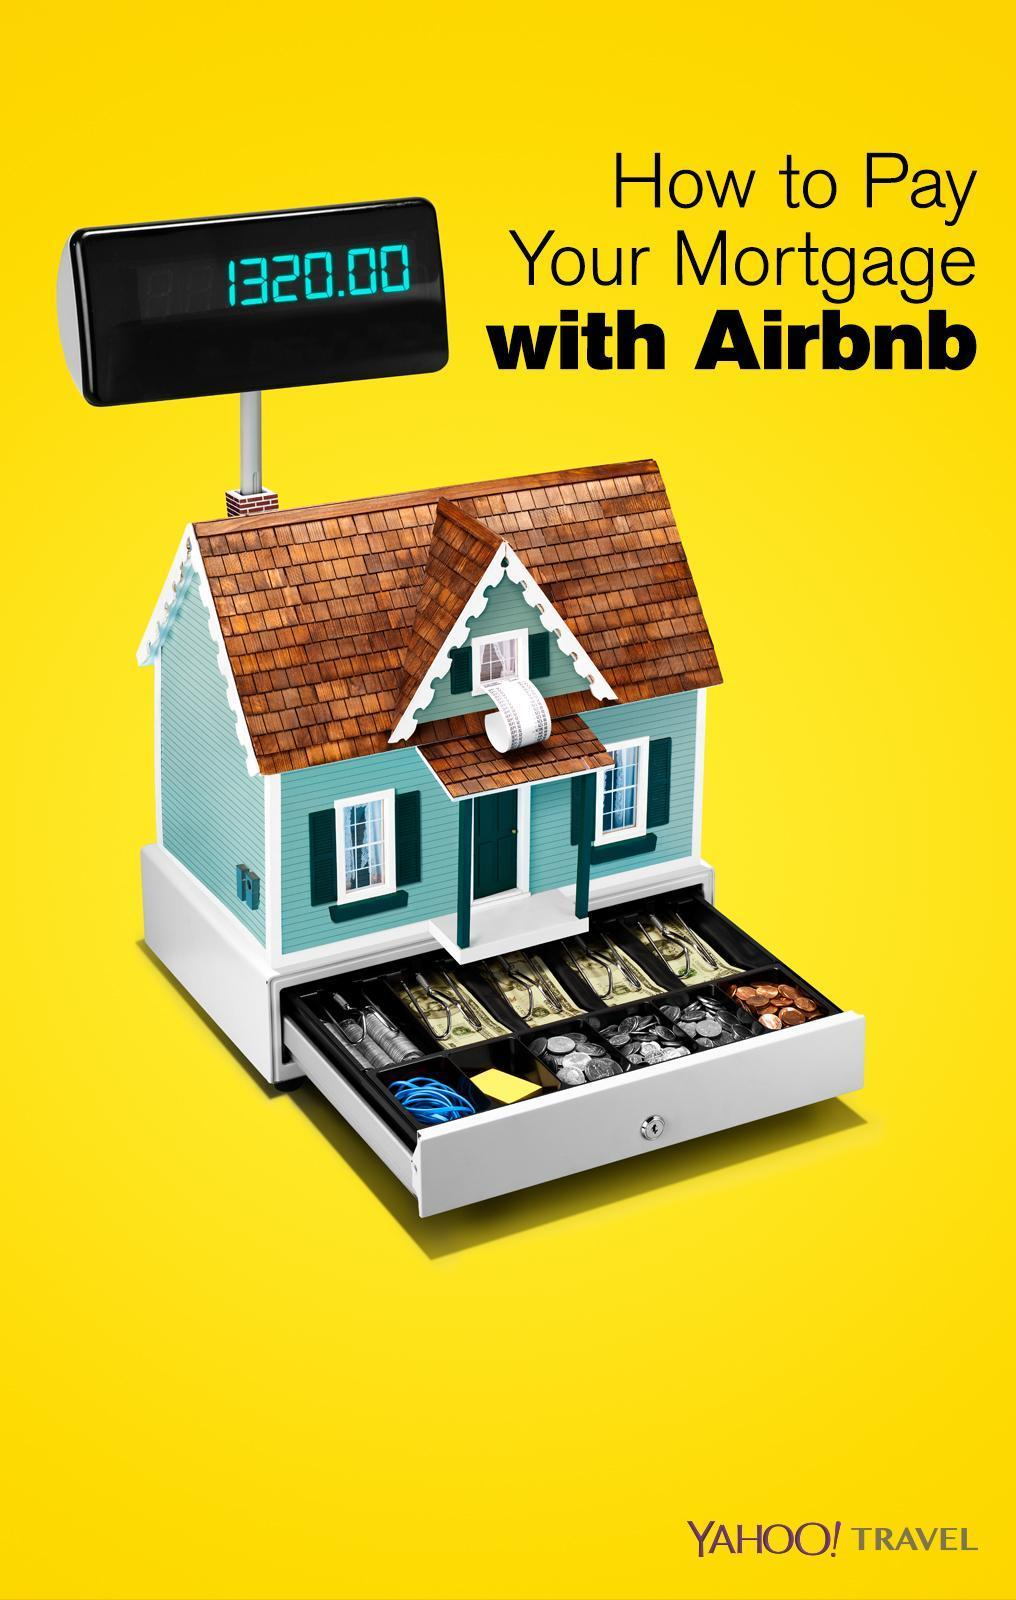 How to help pay your mortgage with airbnb for Airbnb how to pay